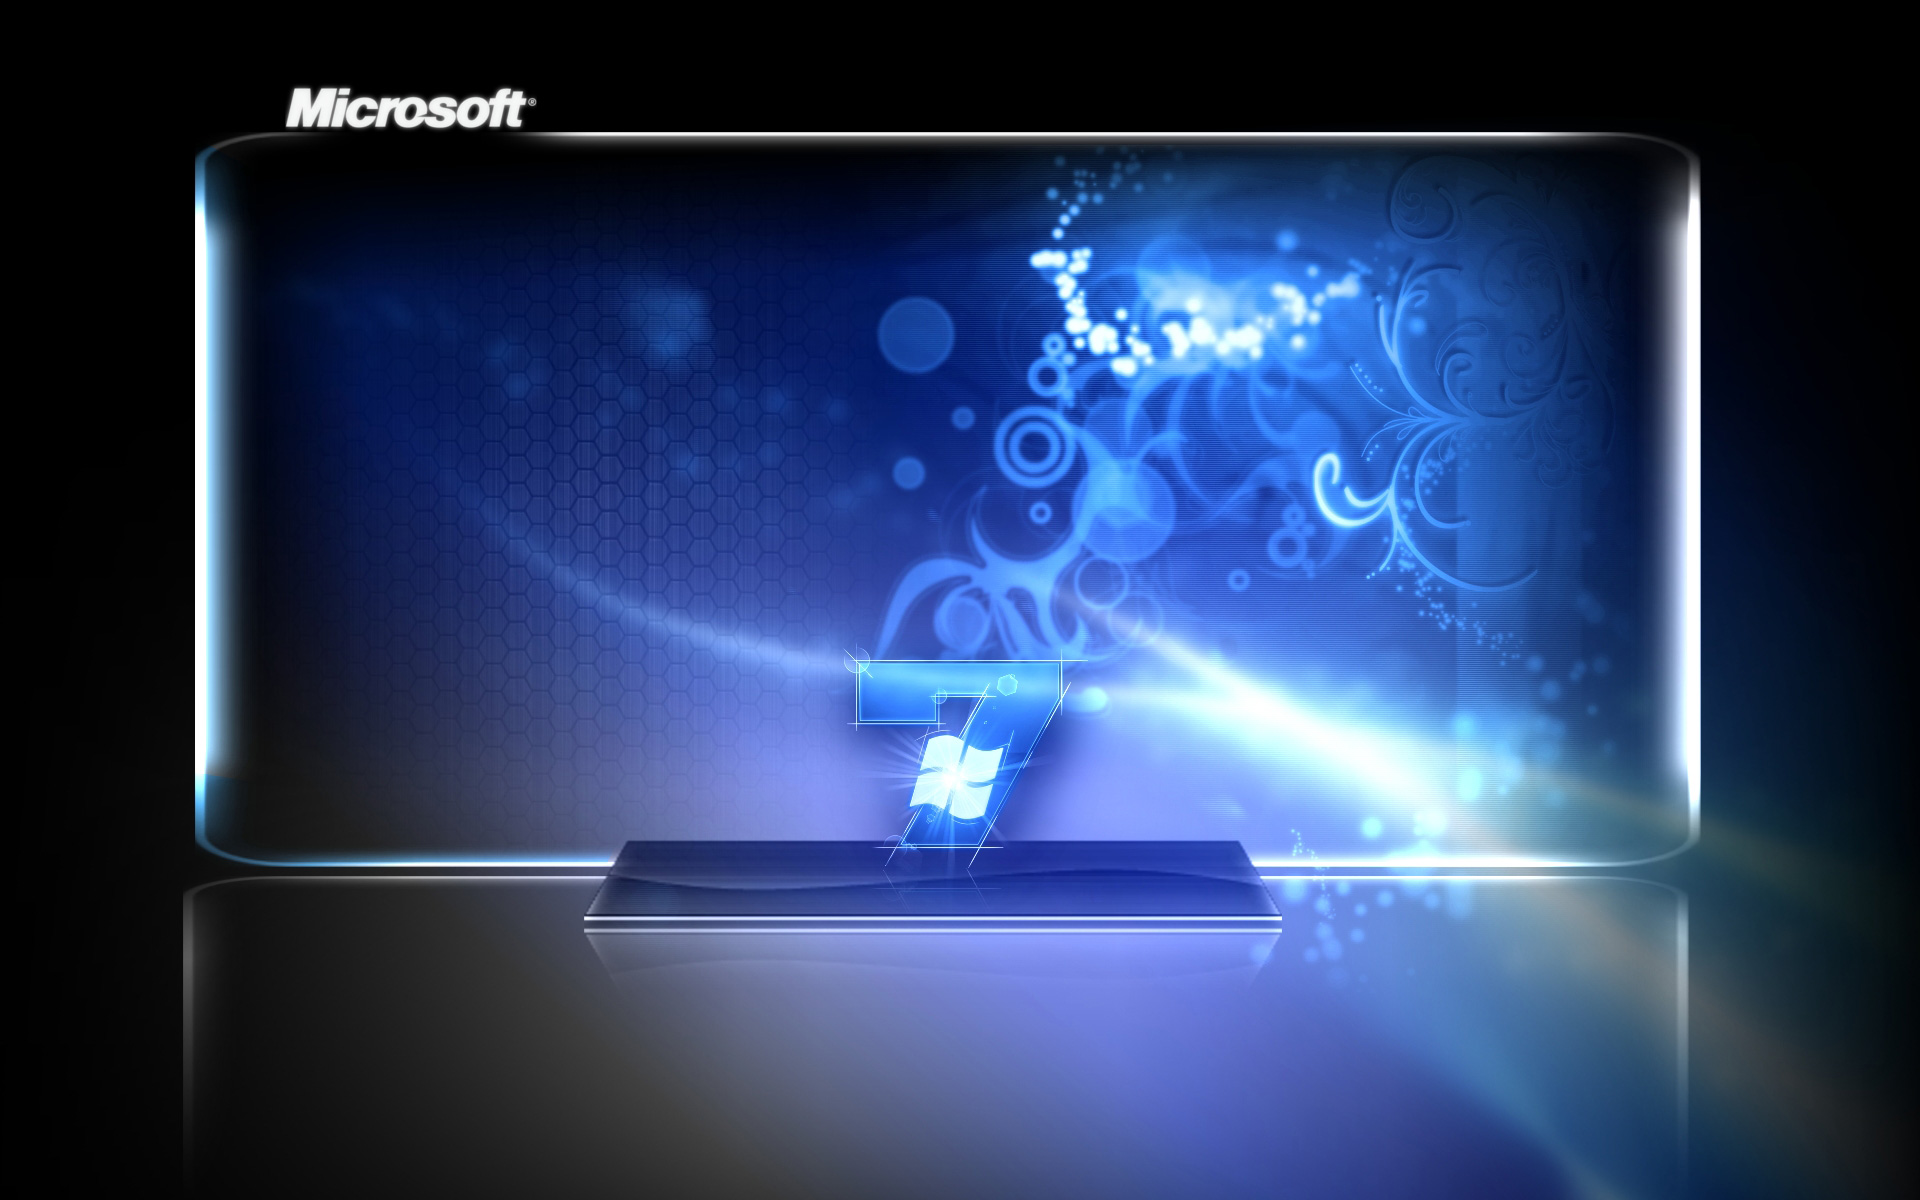 Windows 7 HD Widescreen